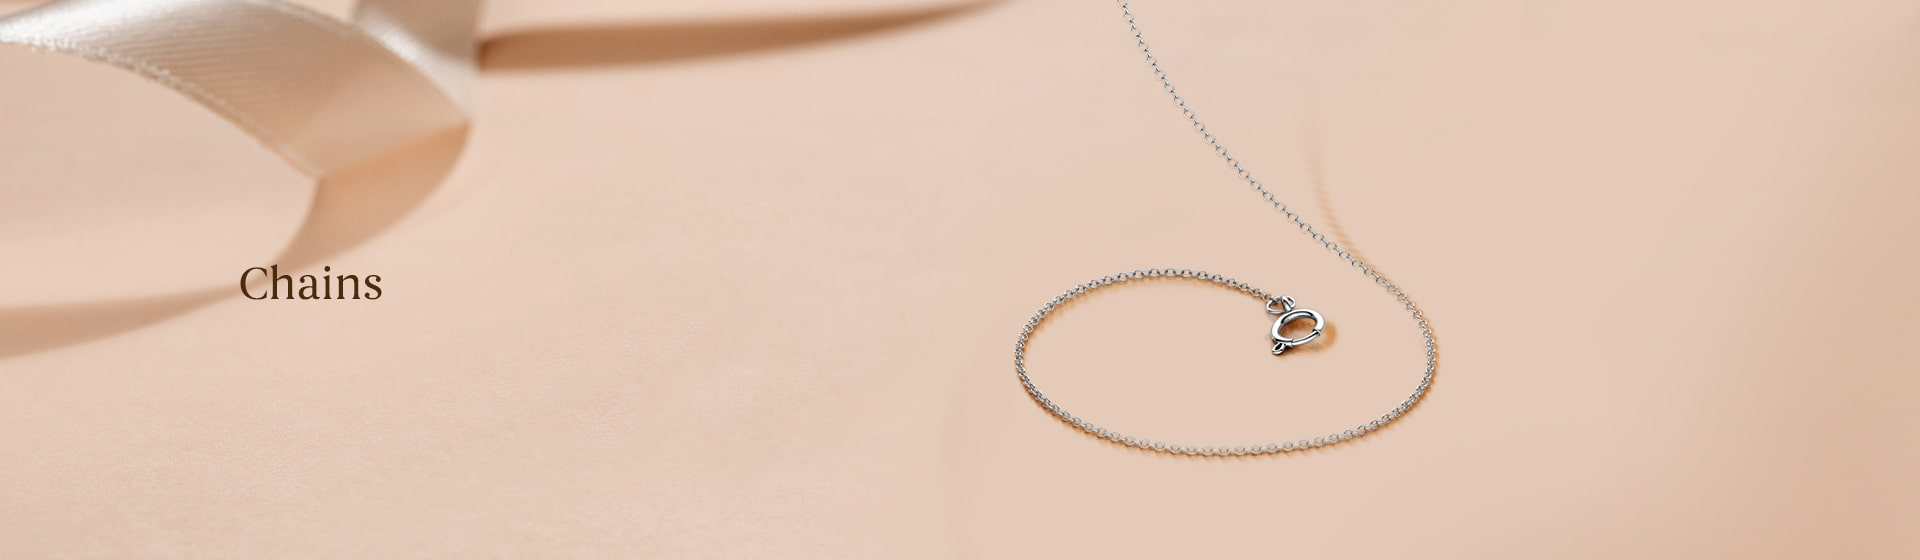 Latest collection of fancy diamond & gold Chain designs for men & women